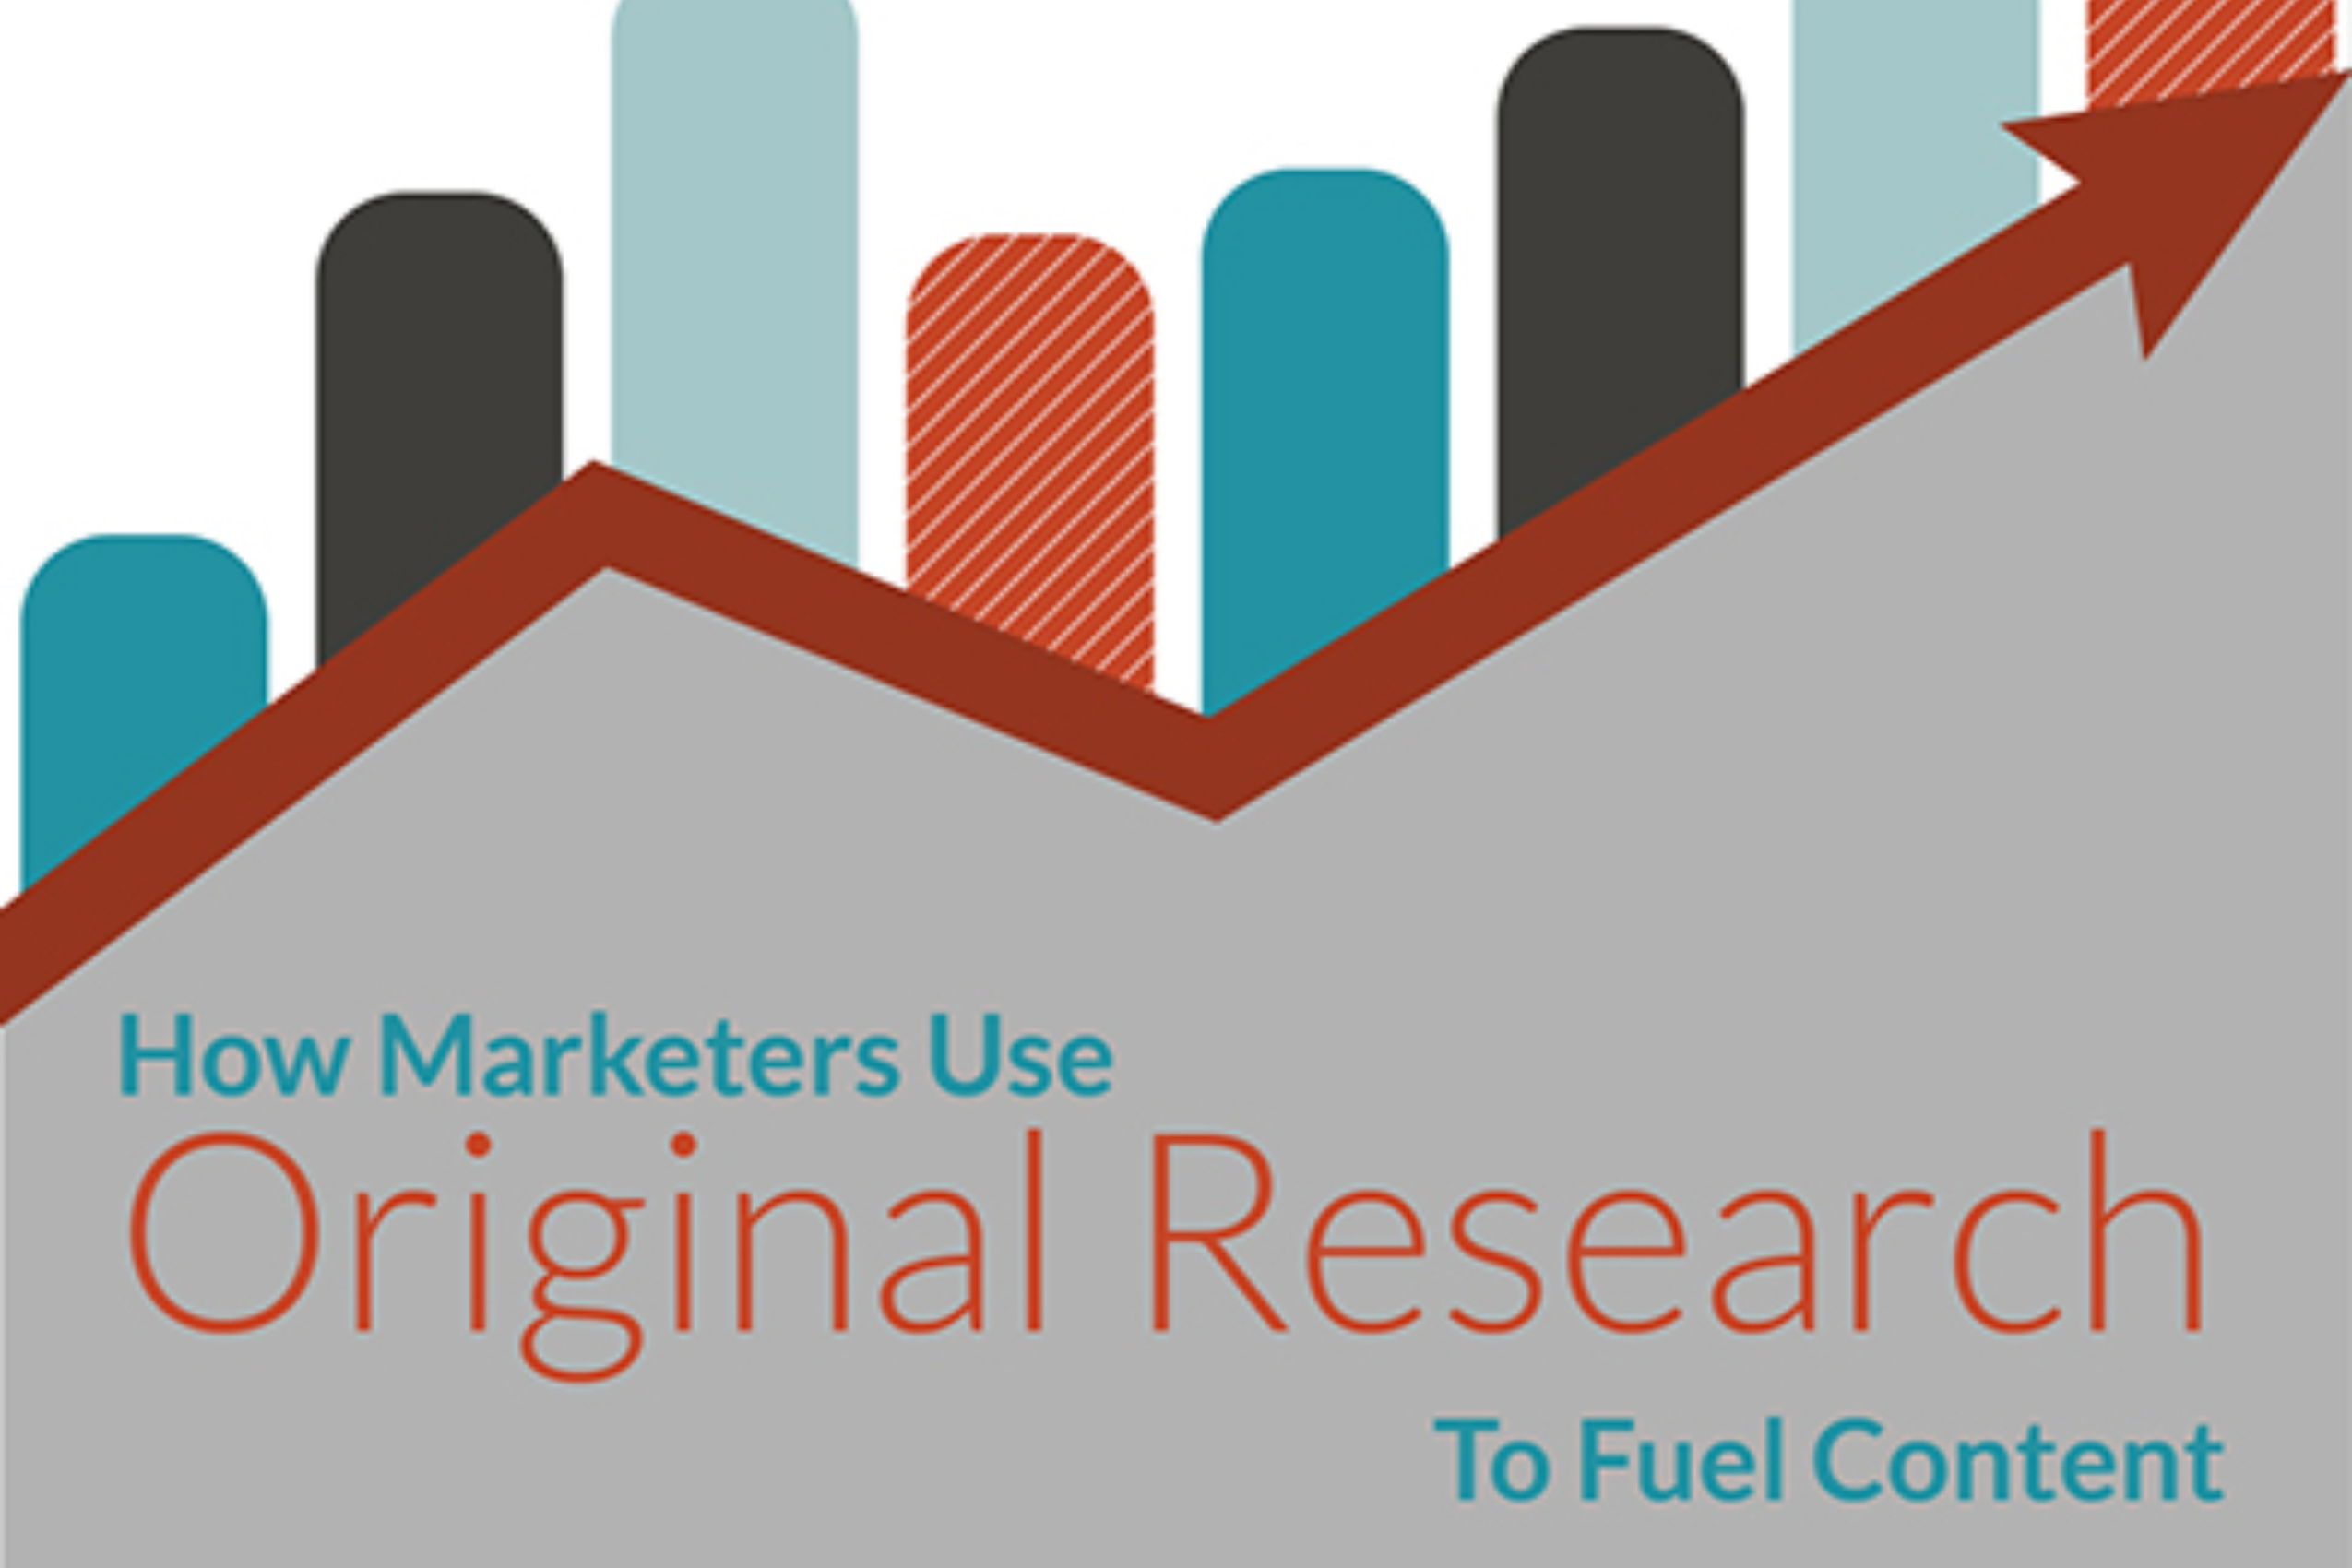 How Marketers Use Original Research To Fuel Content (infographic)